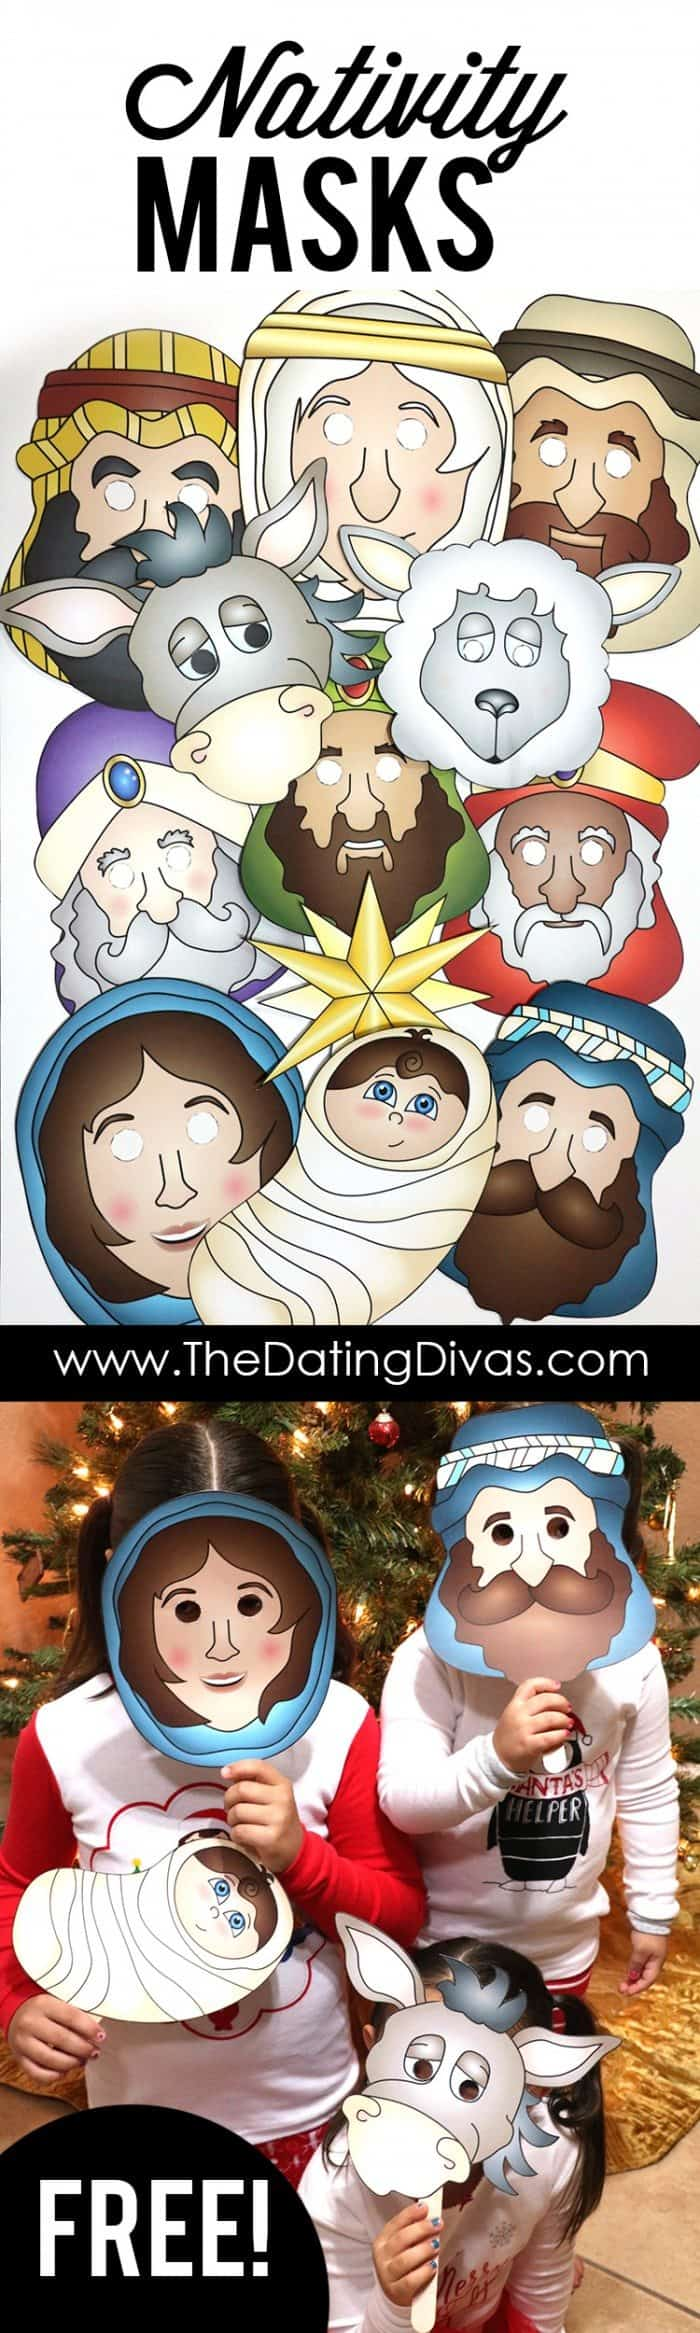 FREE Printable Nativity Masks or Color Your Own Masks and ...